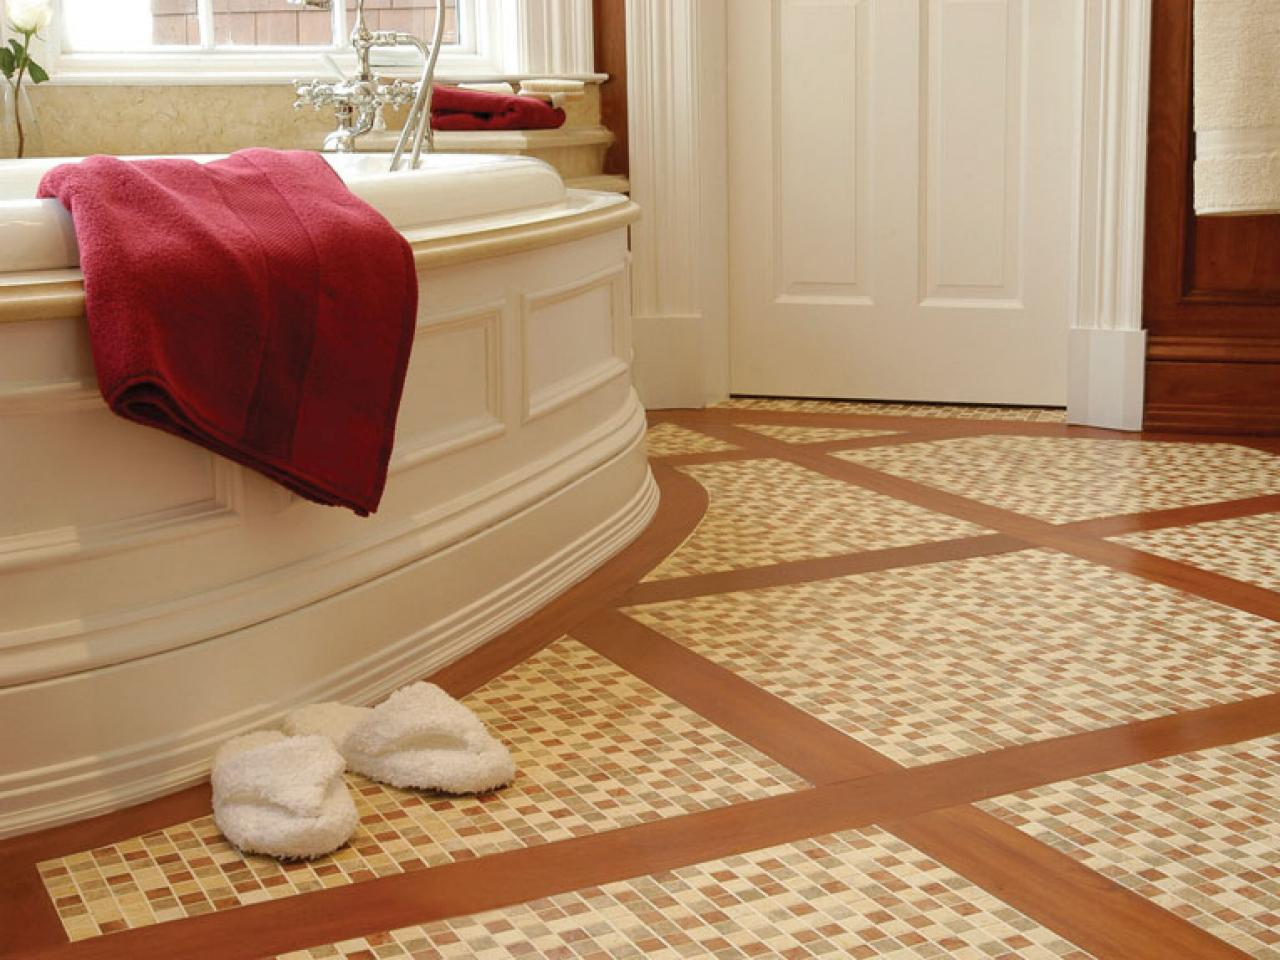 Wall Carpet Designs find this pin and more on carpet designs Stone Tile Flooring